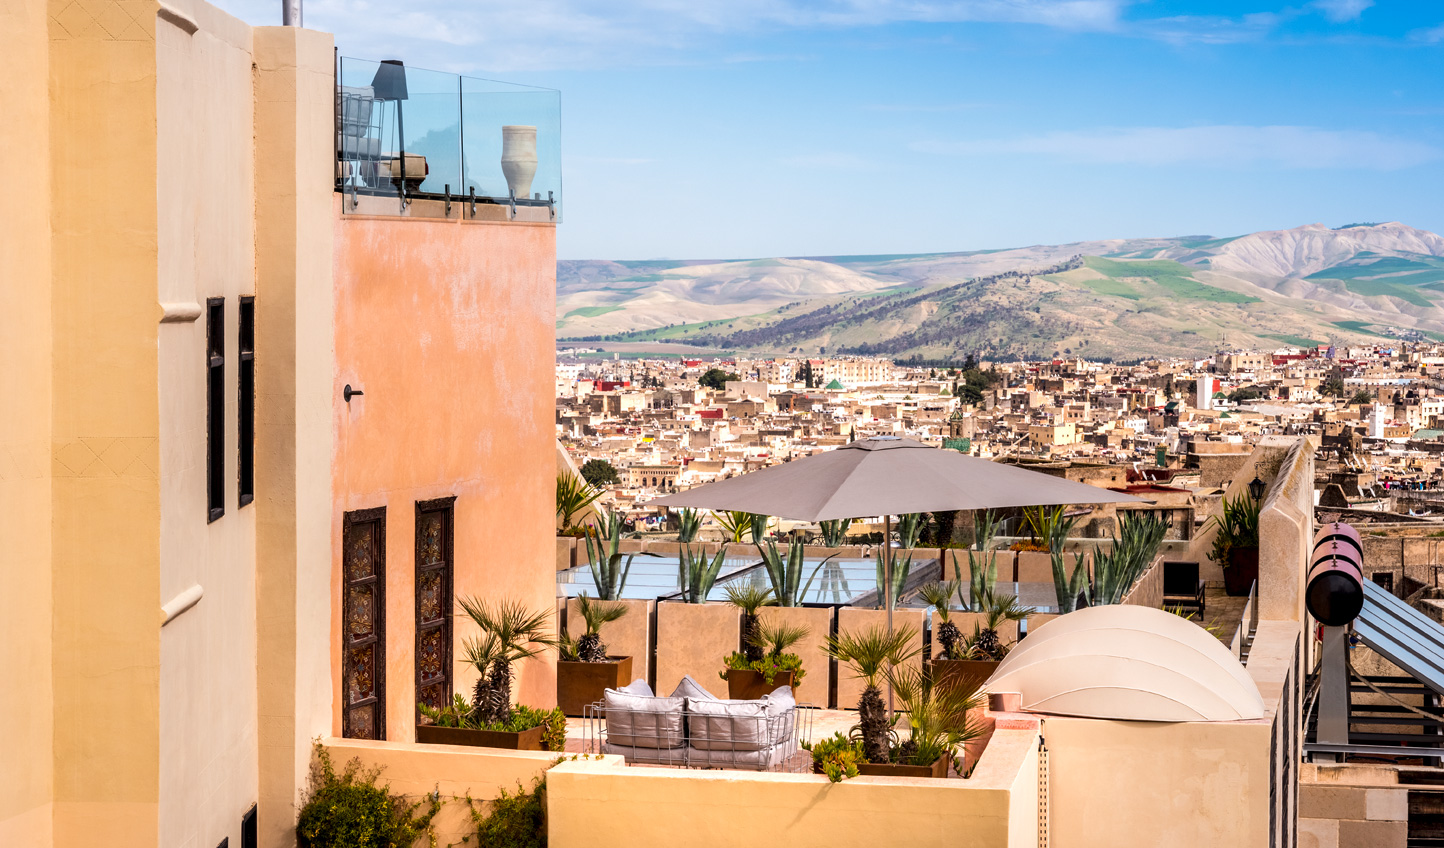 A privileged location in the heart of Fes